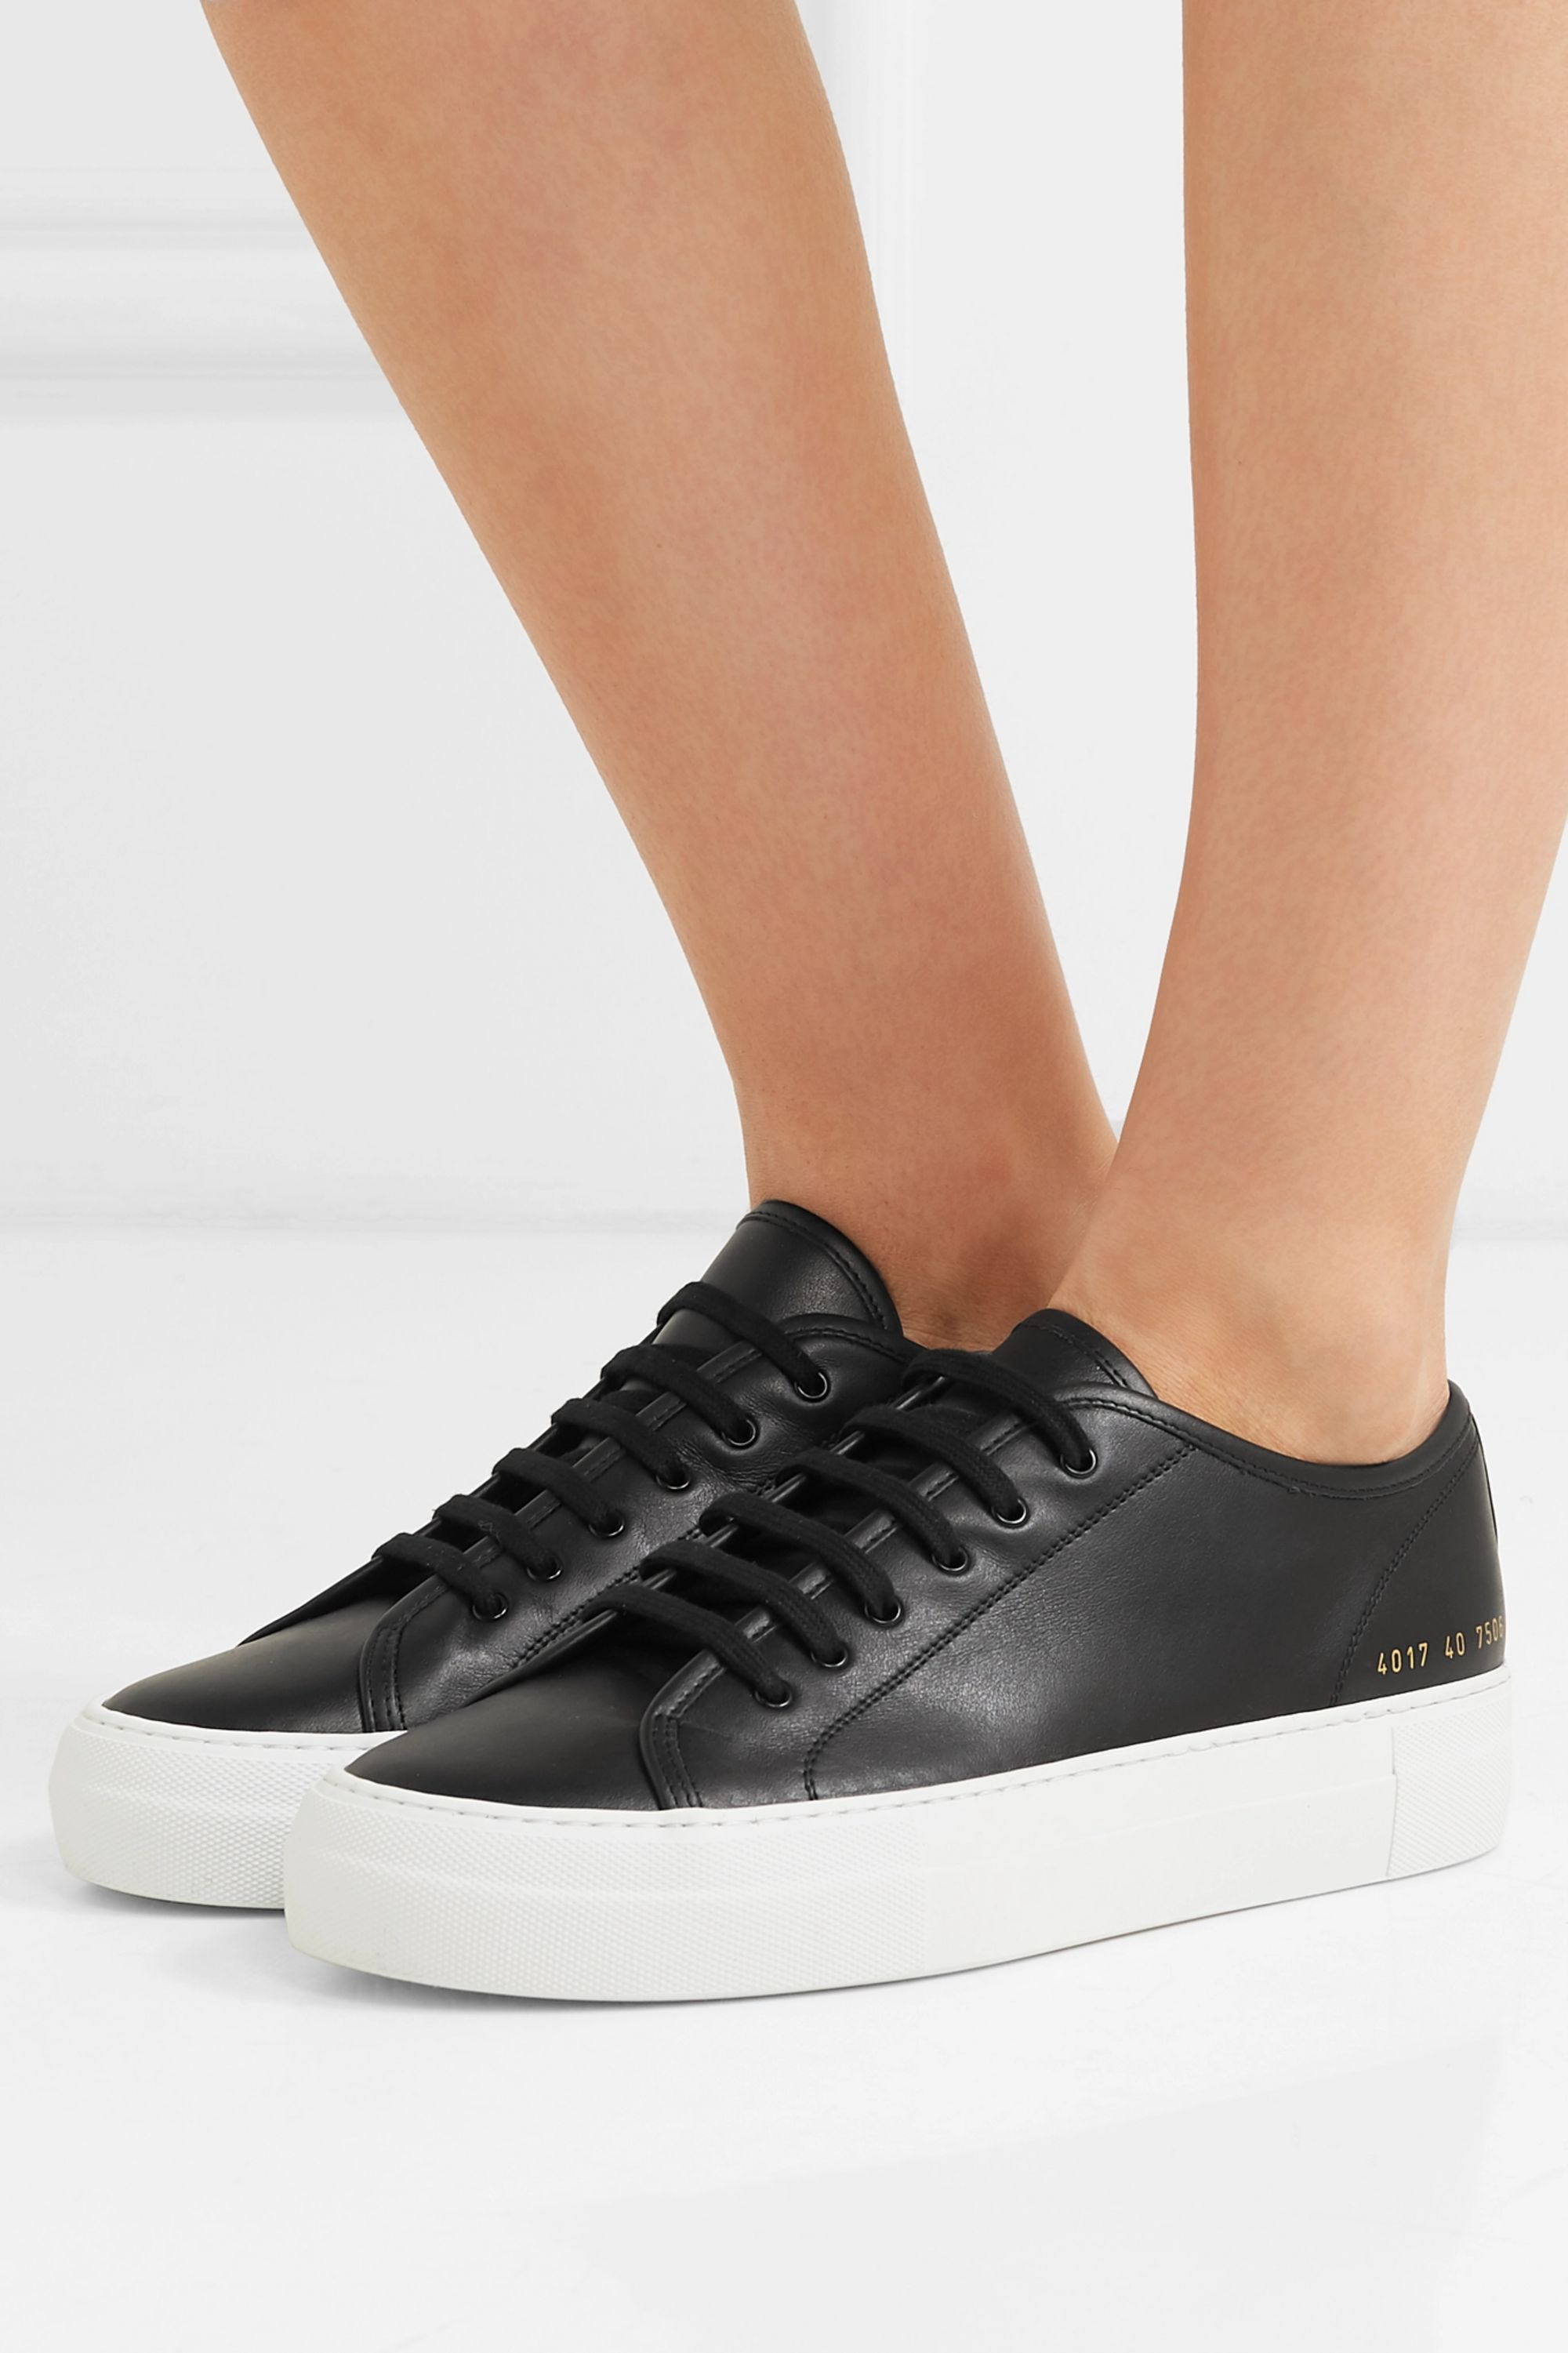 Black Tournament leather sneakers